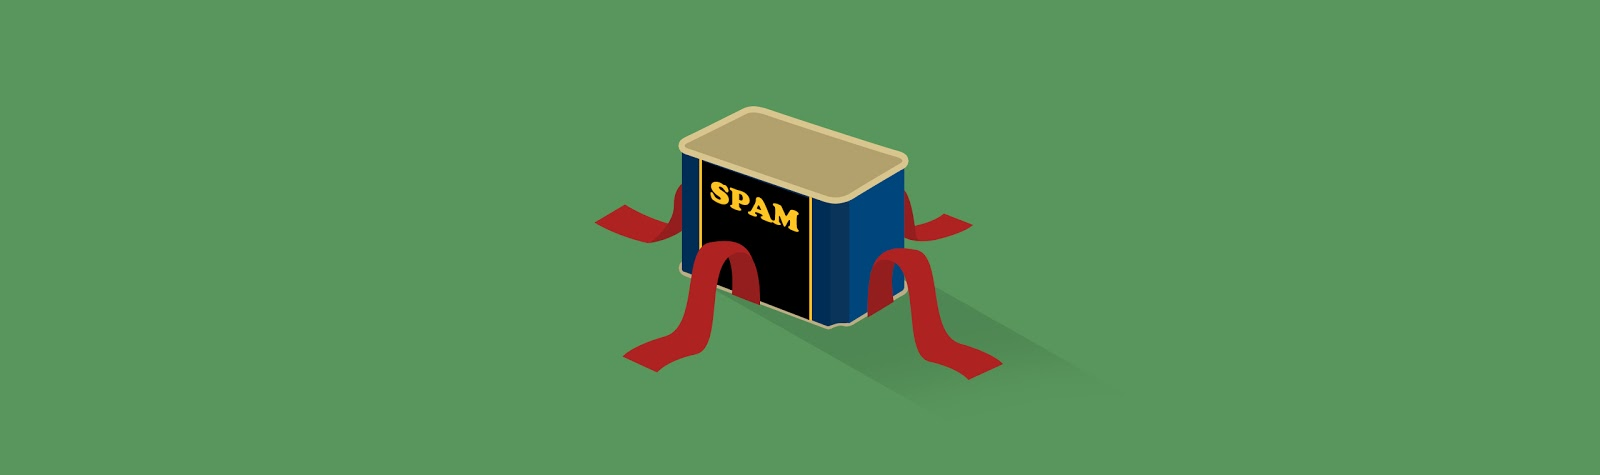 Graphic showing a spam box